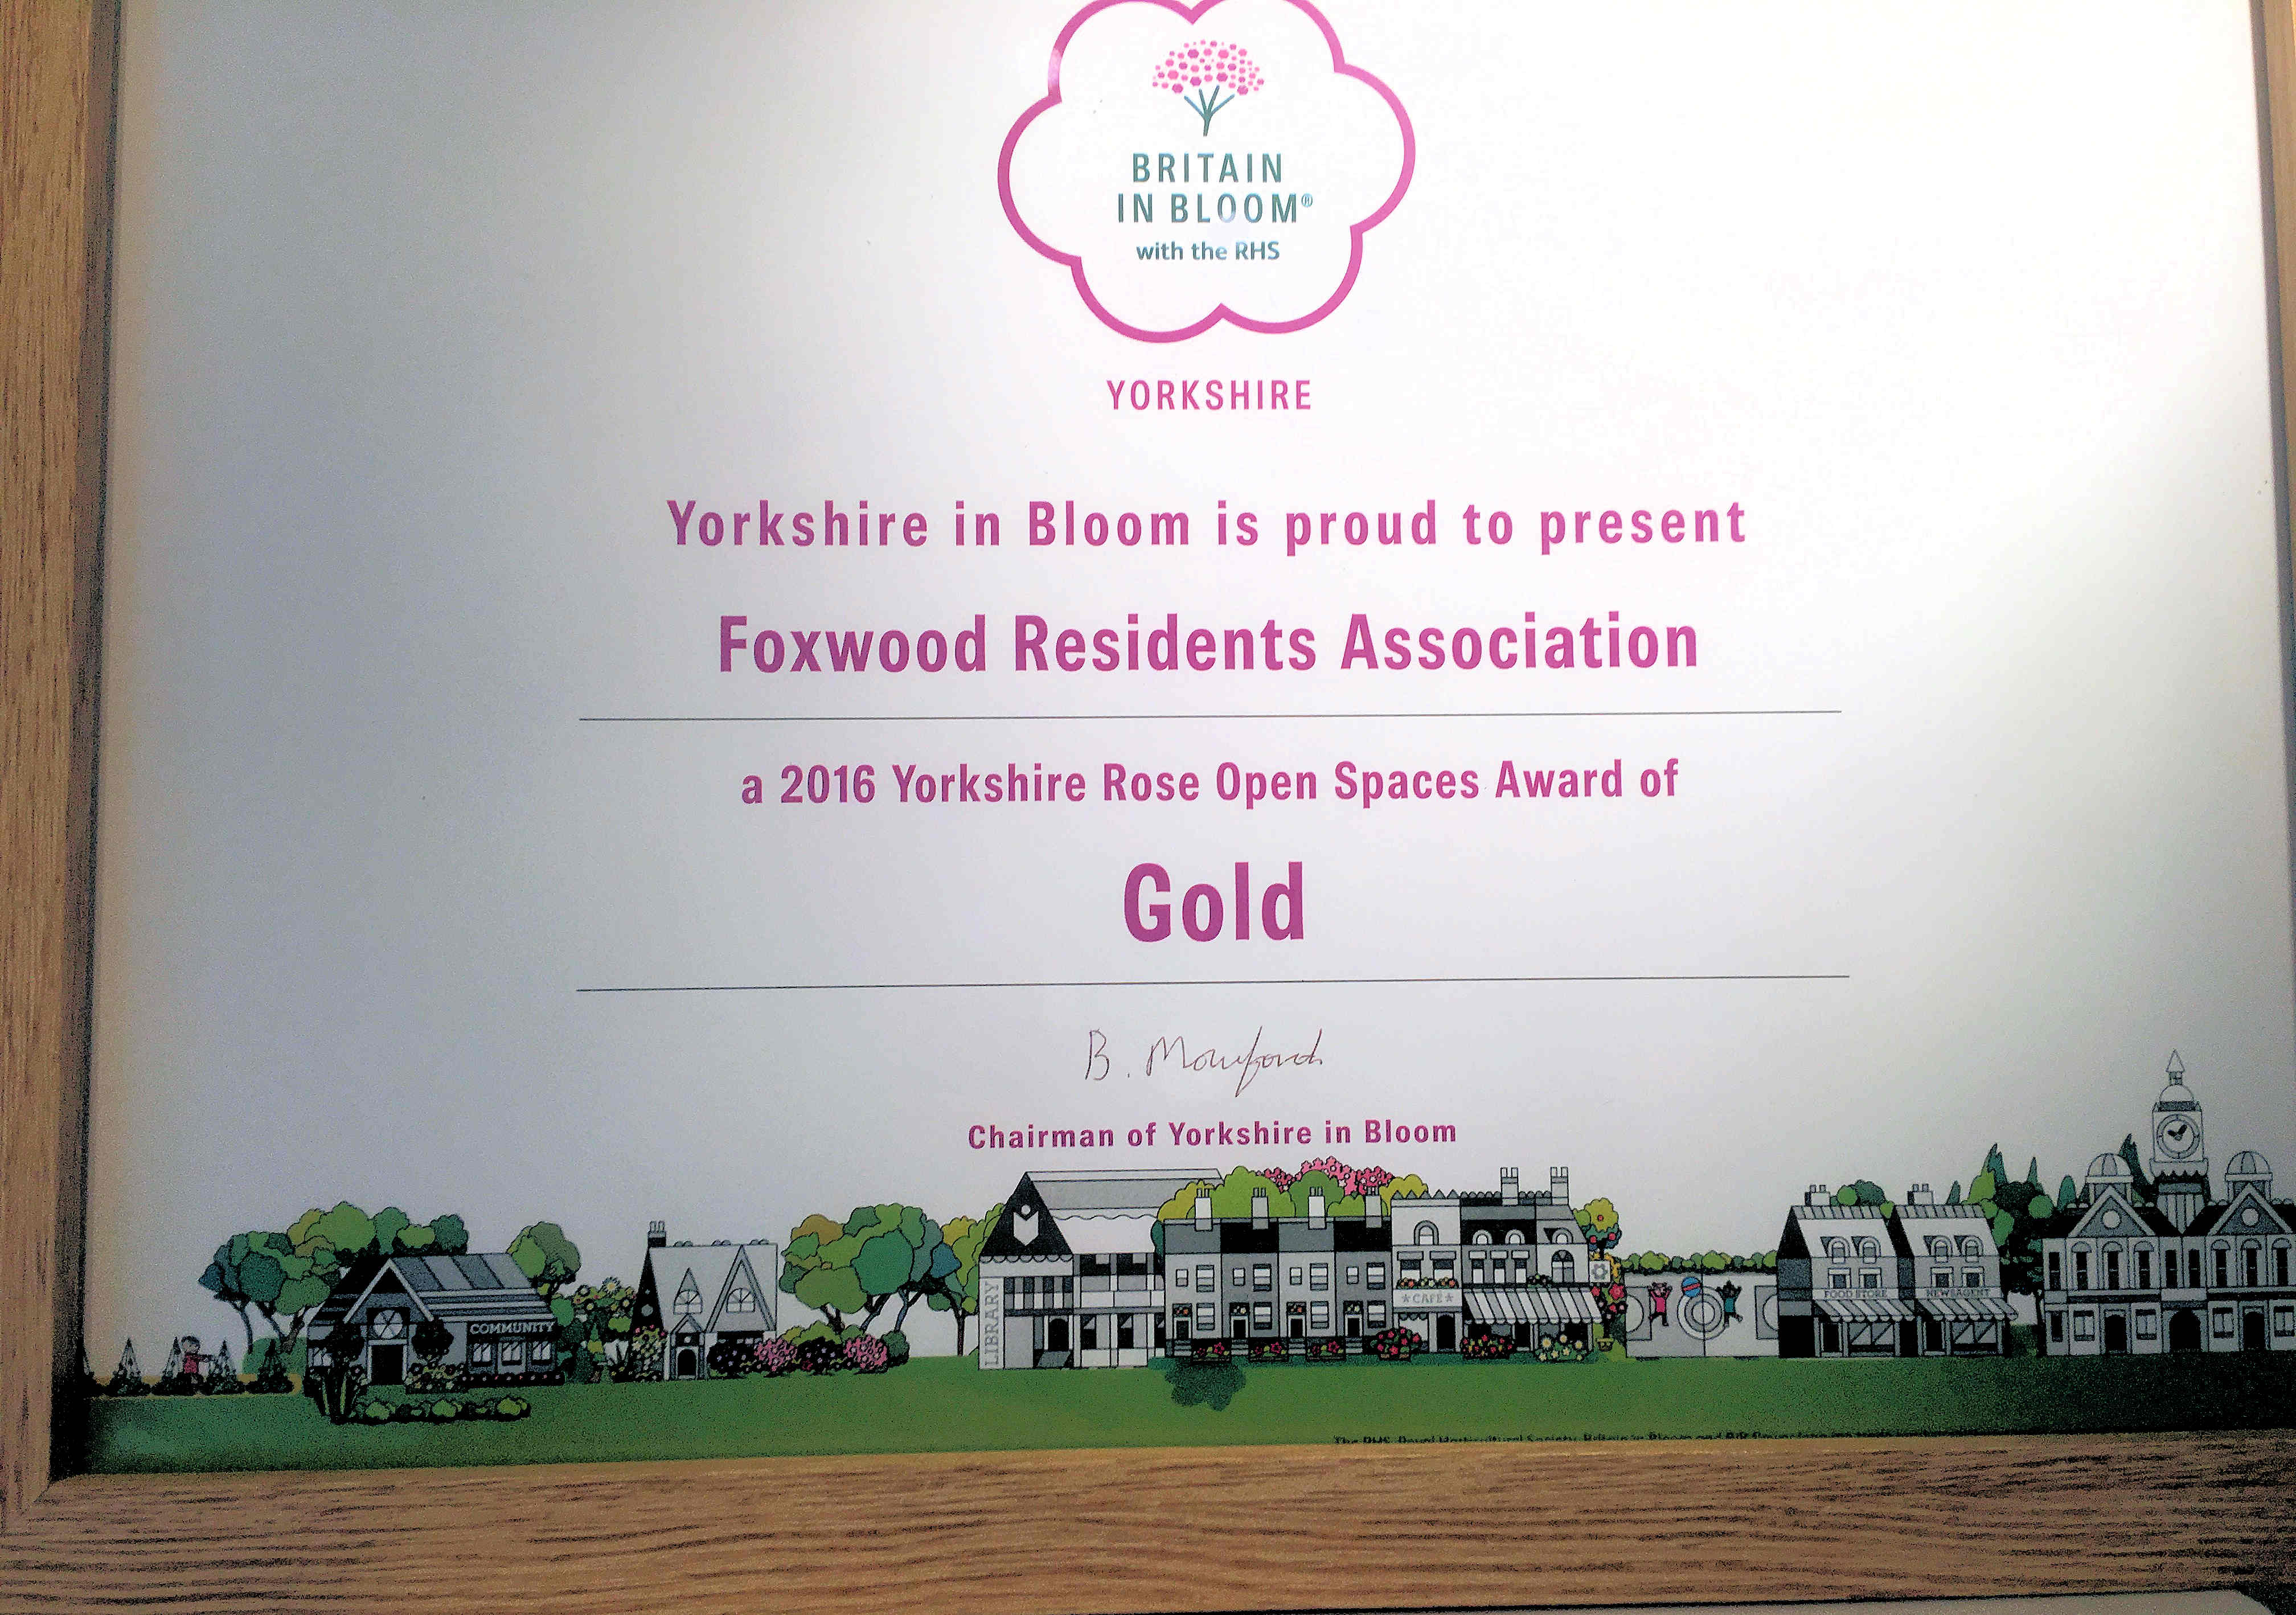 Foxwood Residents Association won a gold award at this years Yorkshire in Bloom contest. They outperfromed many institutions who had been able to employ the services of professionals.